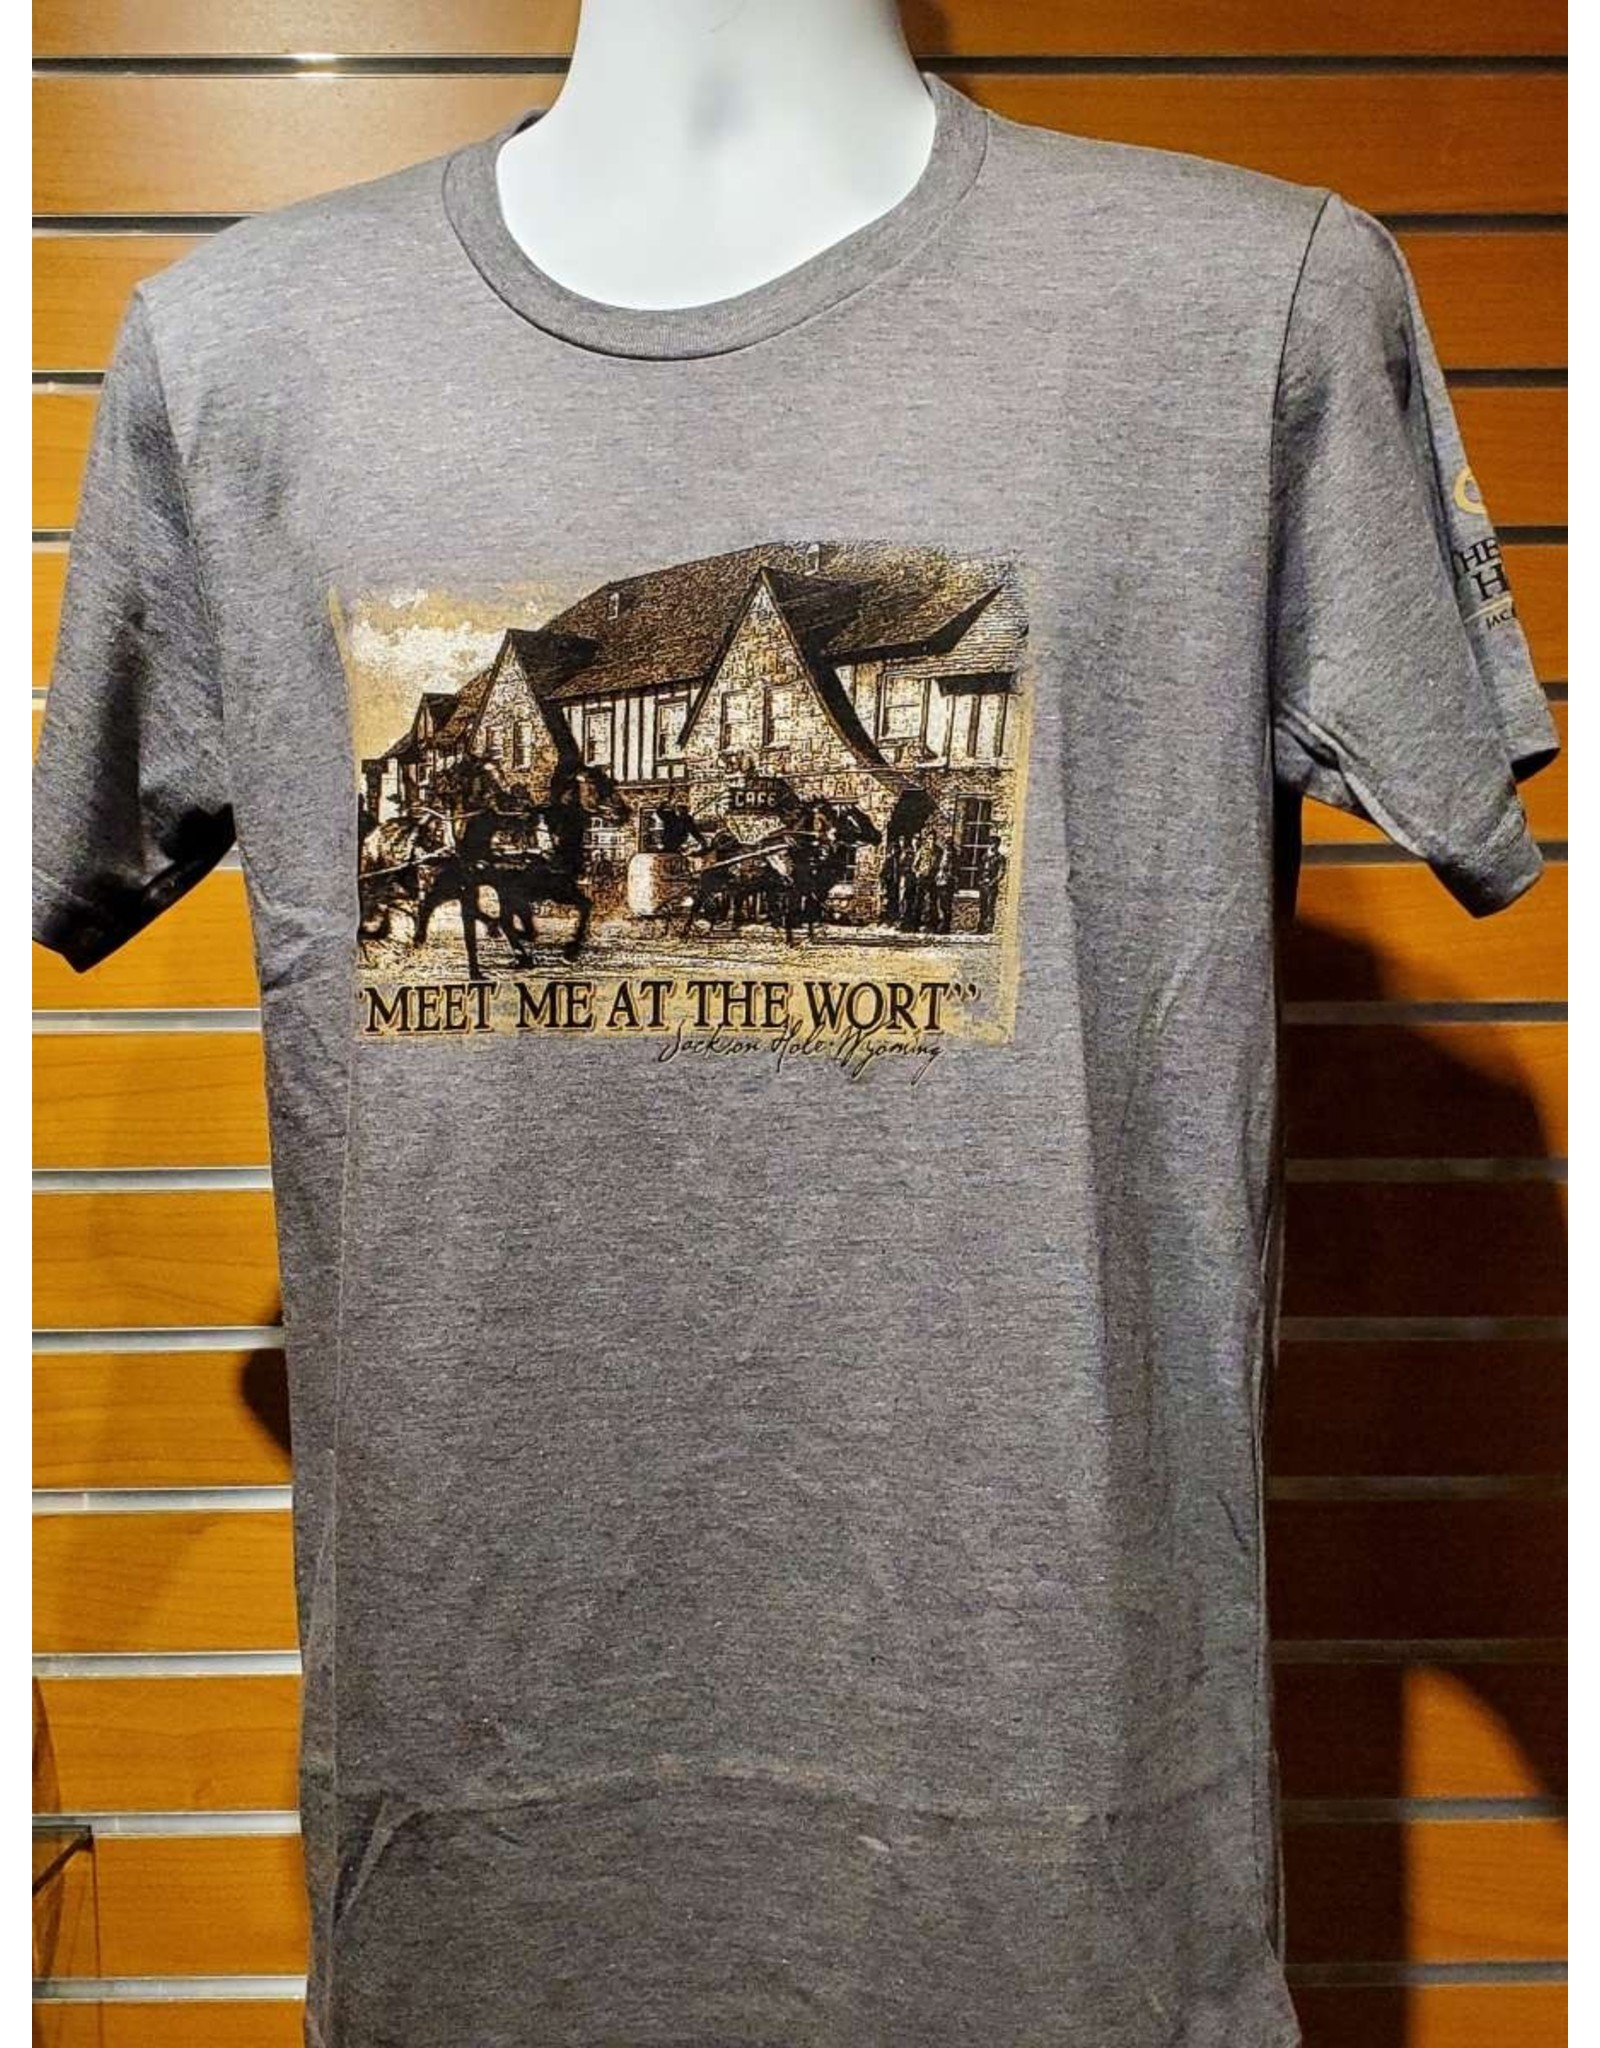 The Wort Hotel Chariot Race T-Shirt